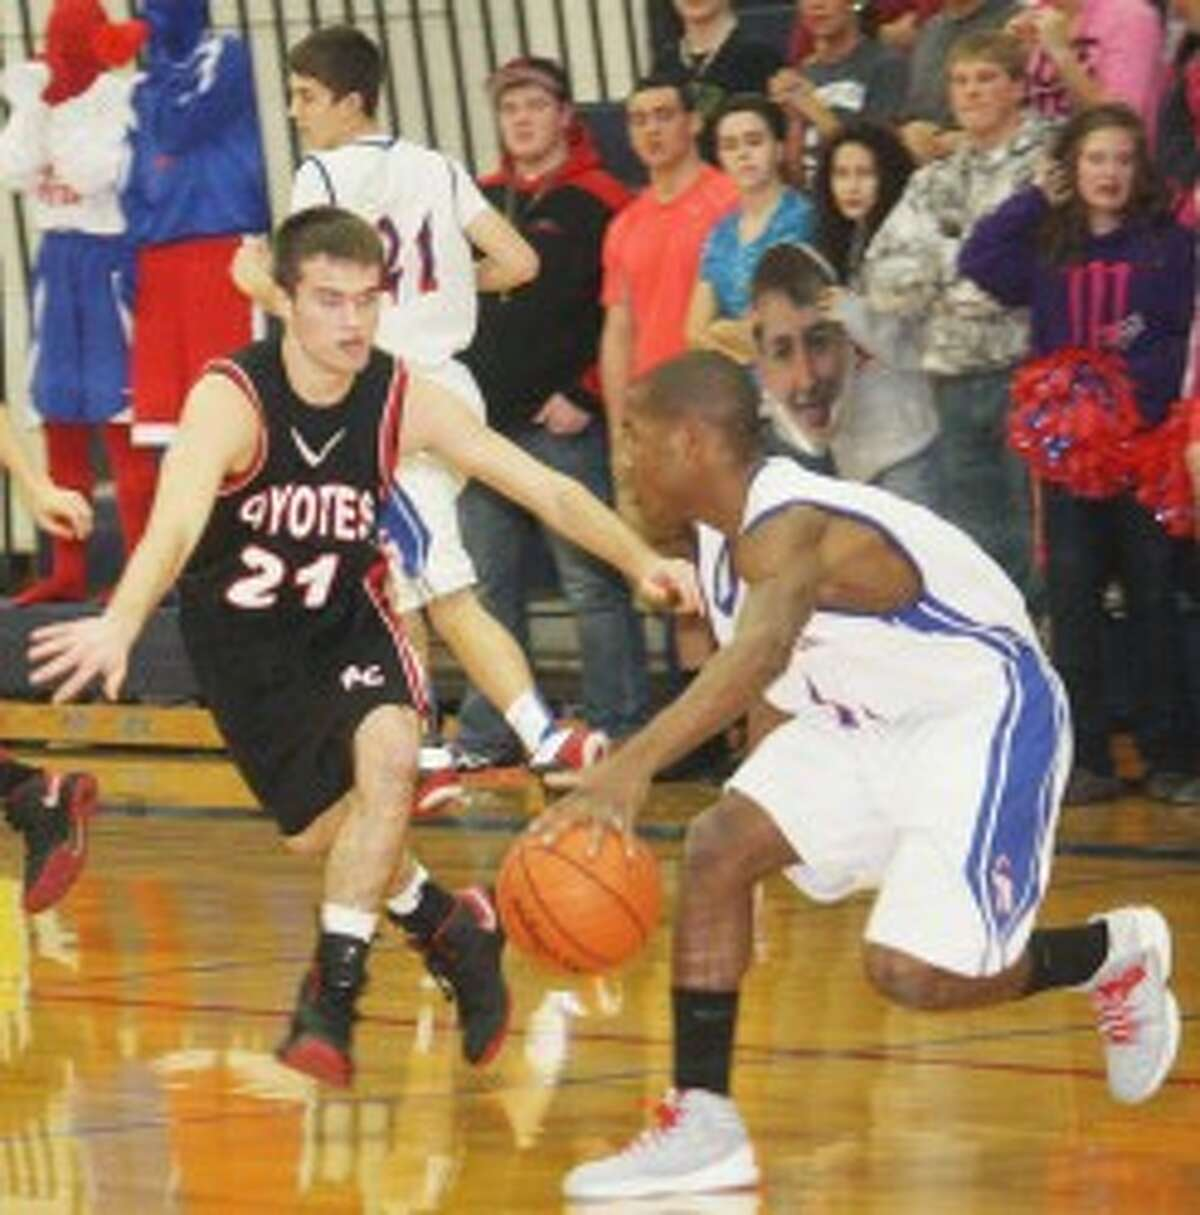 ON GUARD: Reed City's Chad Samuels (left) sticks with Chippewa Hills' Qunnell Key during Thursday's basketball action. (Pioneer photo/John Raffel)